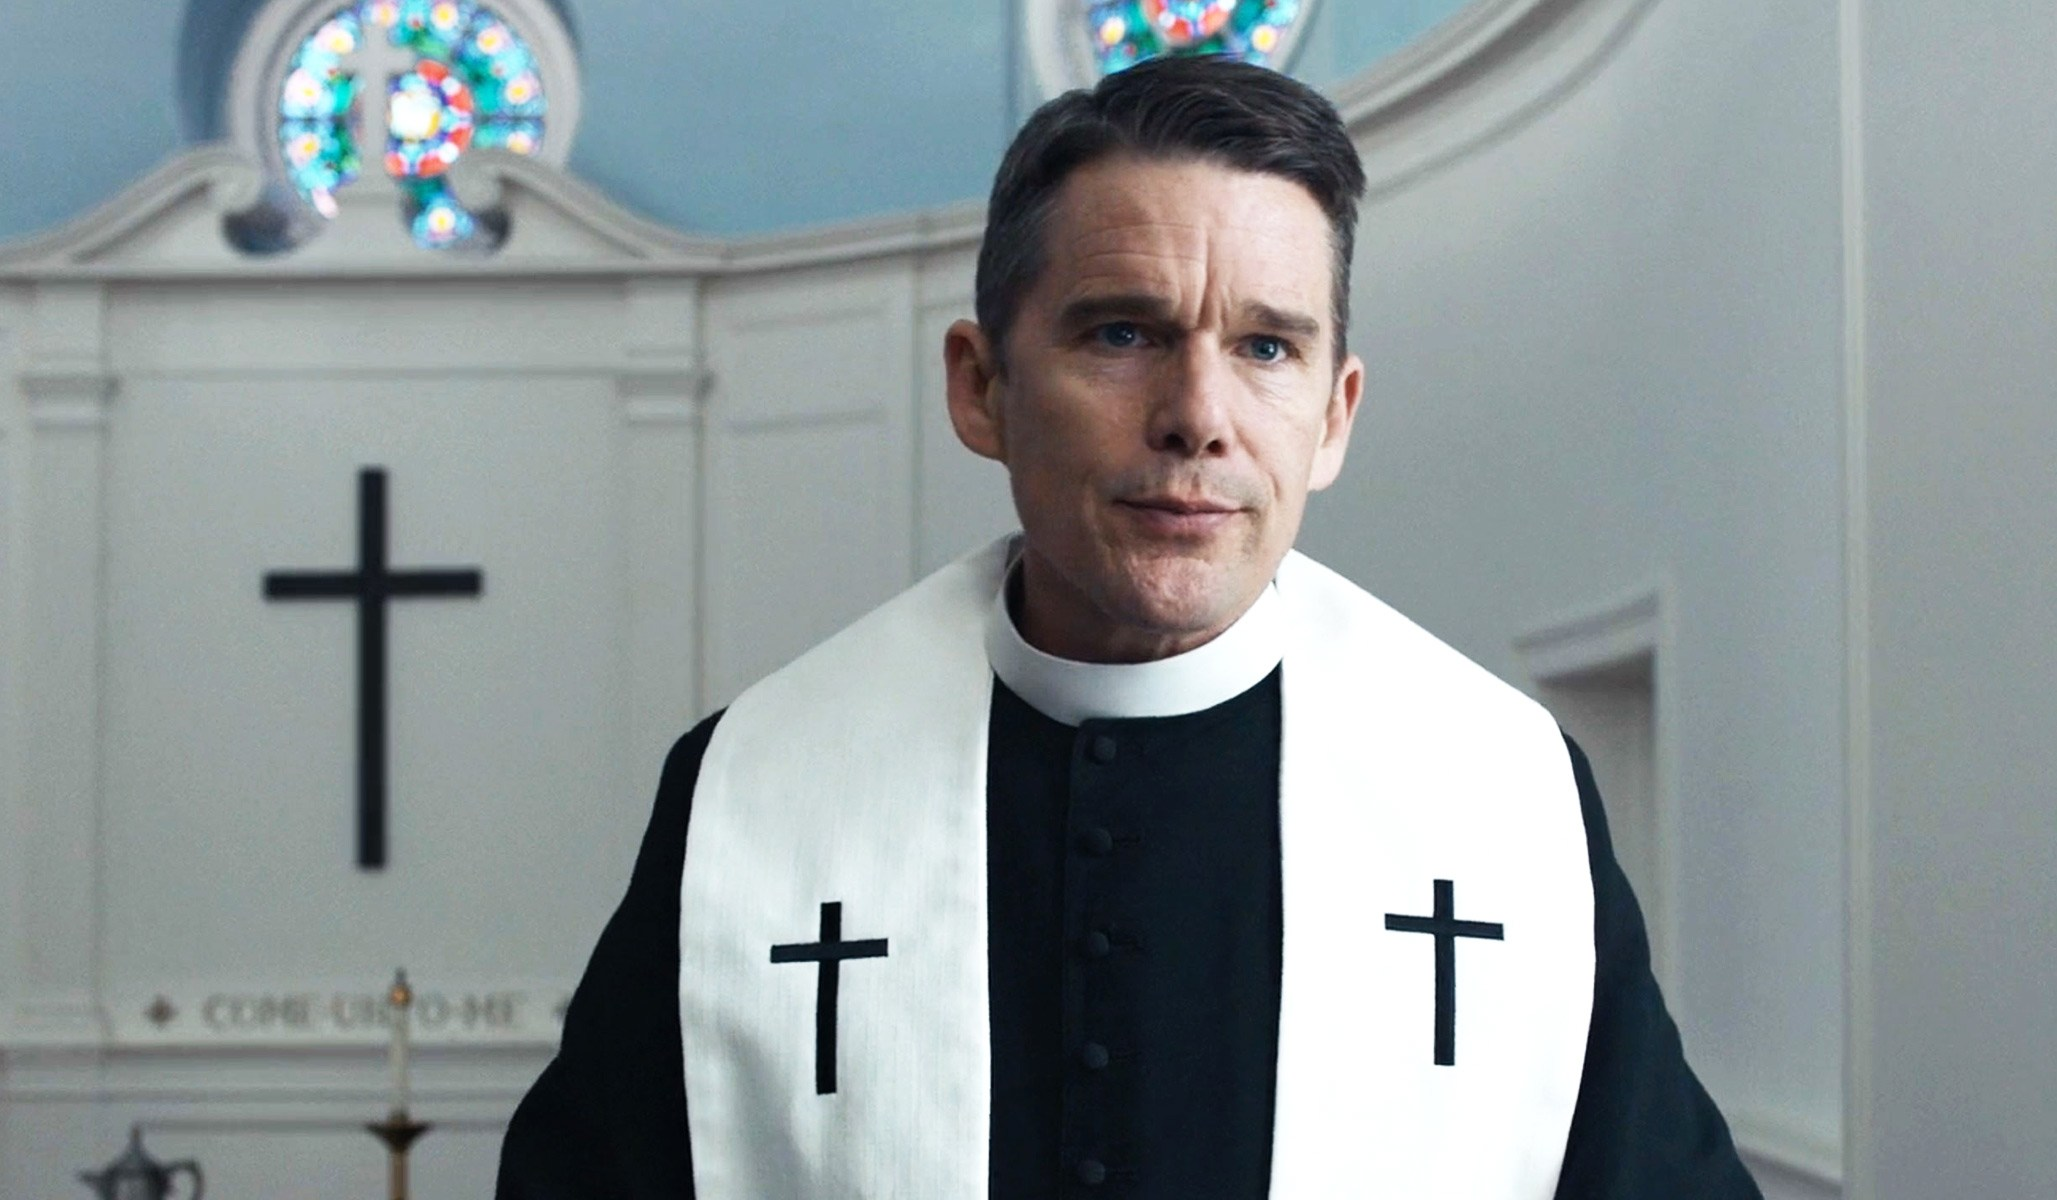 First Reformed, starring Ethan Hawke, is bruising, vital, and one of the year's best films